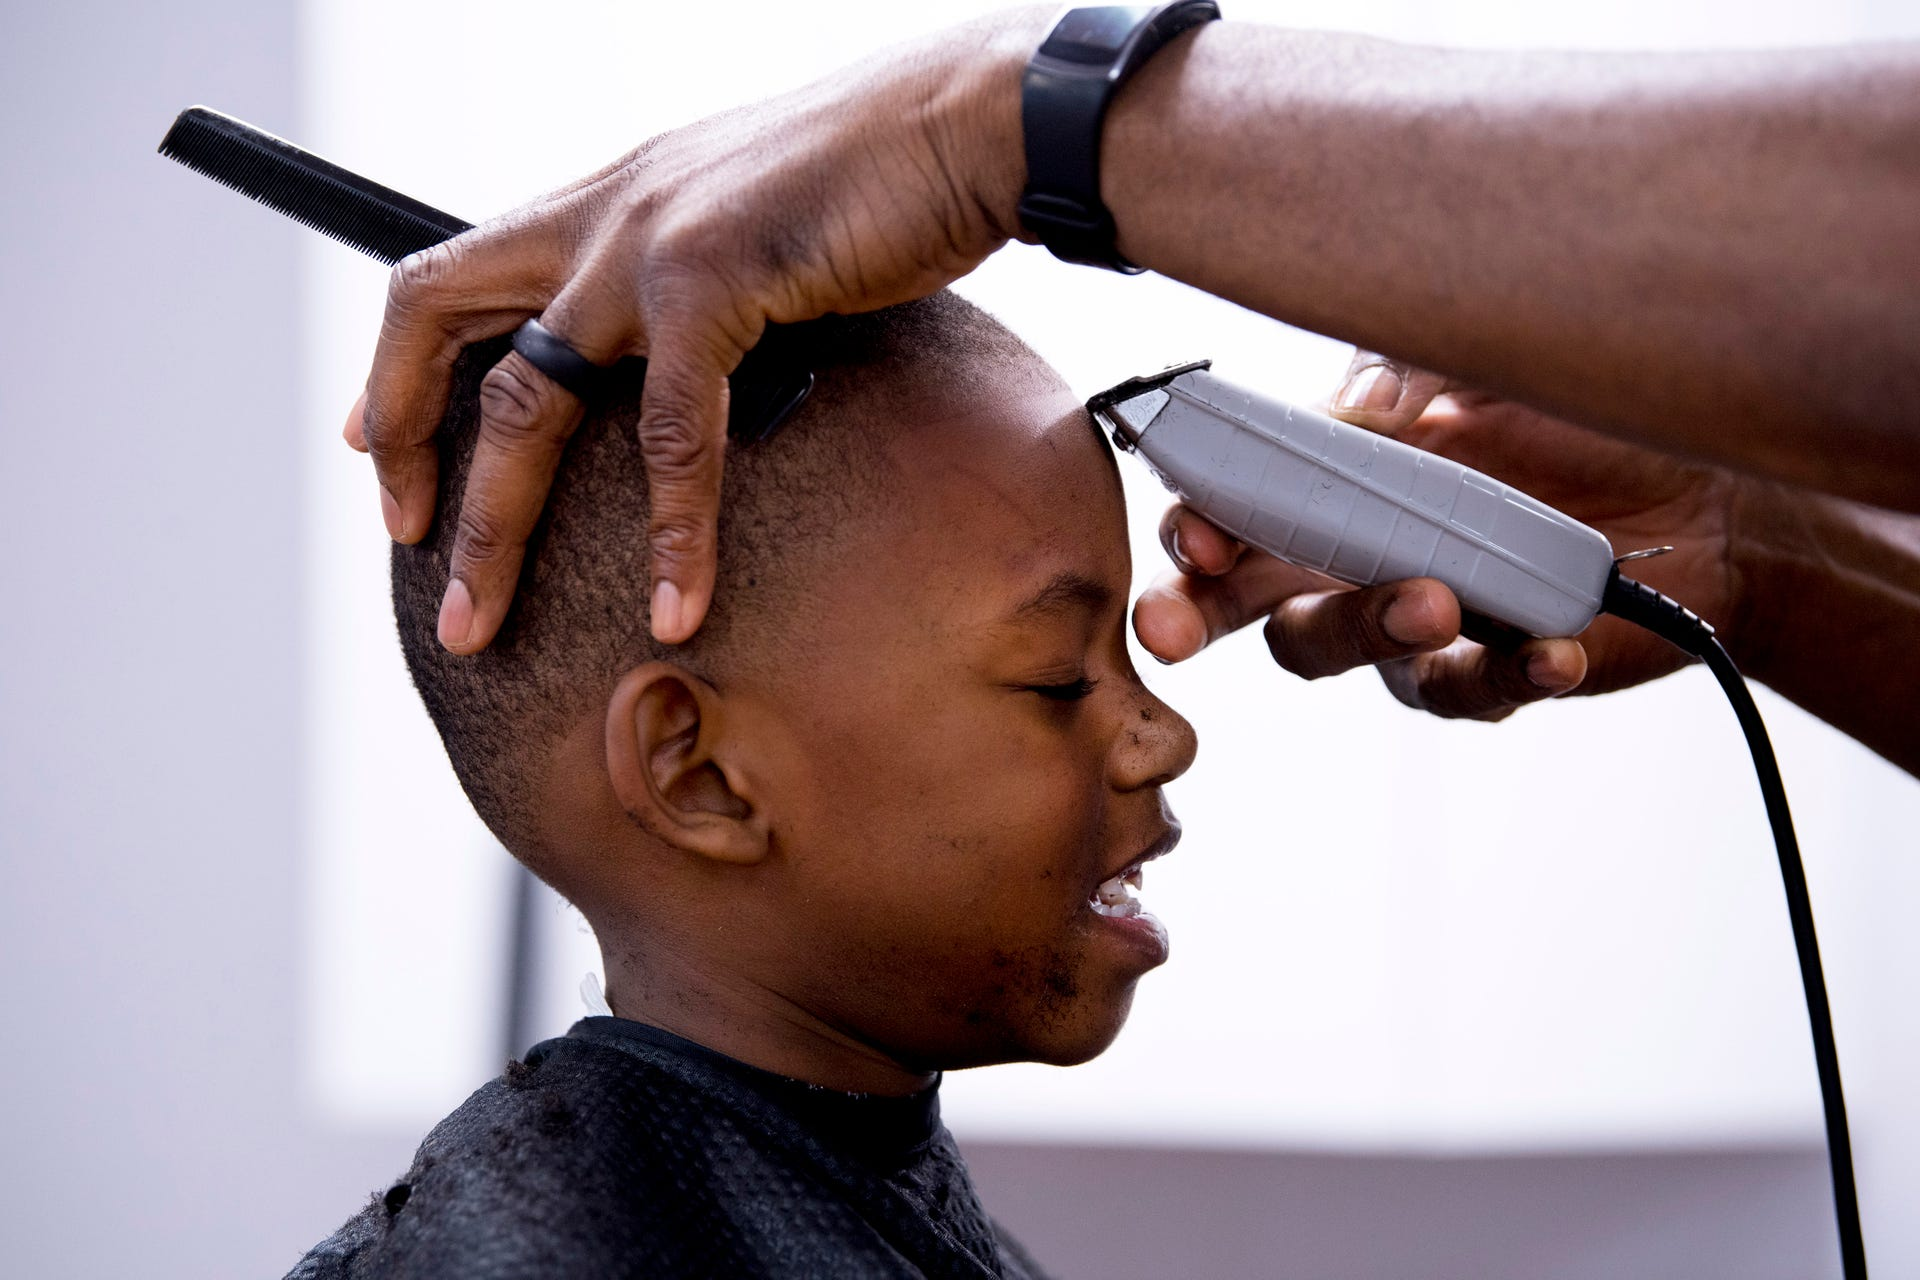 Back To School Haircuts On The House At Jeralds Barbershop